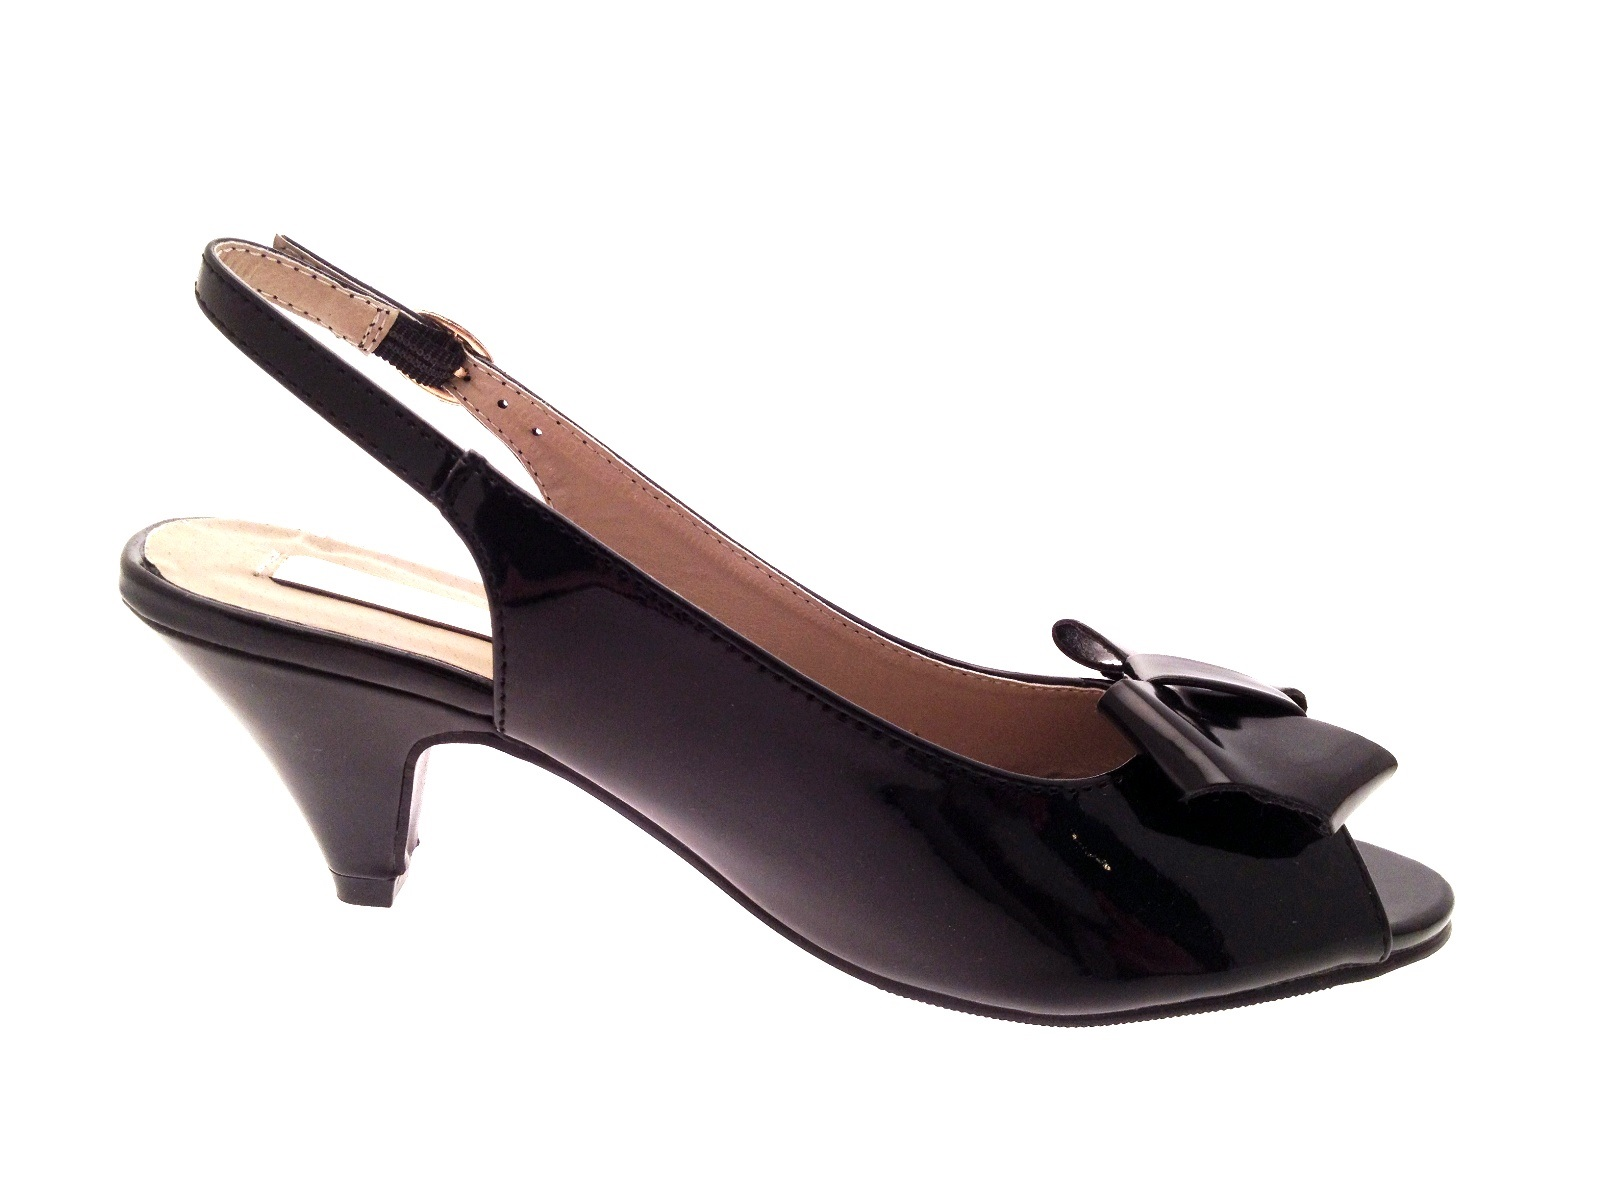 Black party sandals - Womens Patent Sling Back Comfort Sandals Party Shoes Wide Fit Low Heel Size 3 8